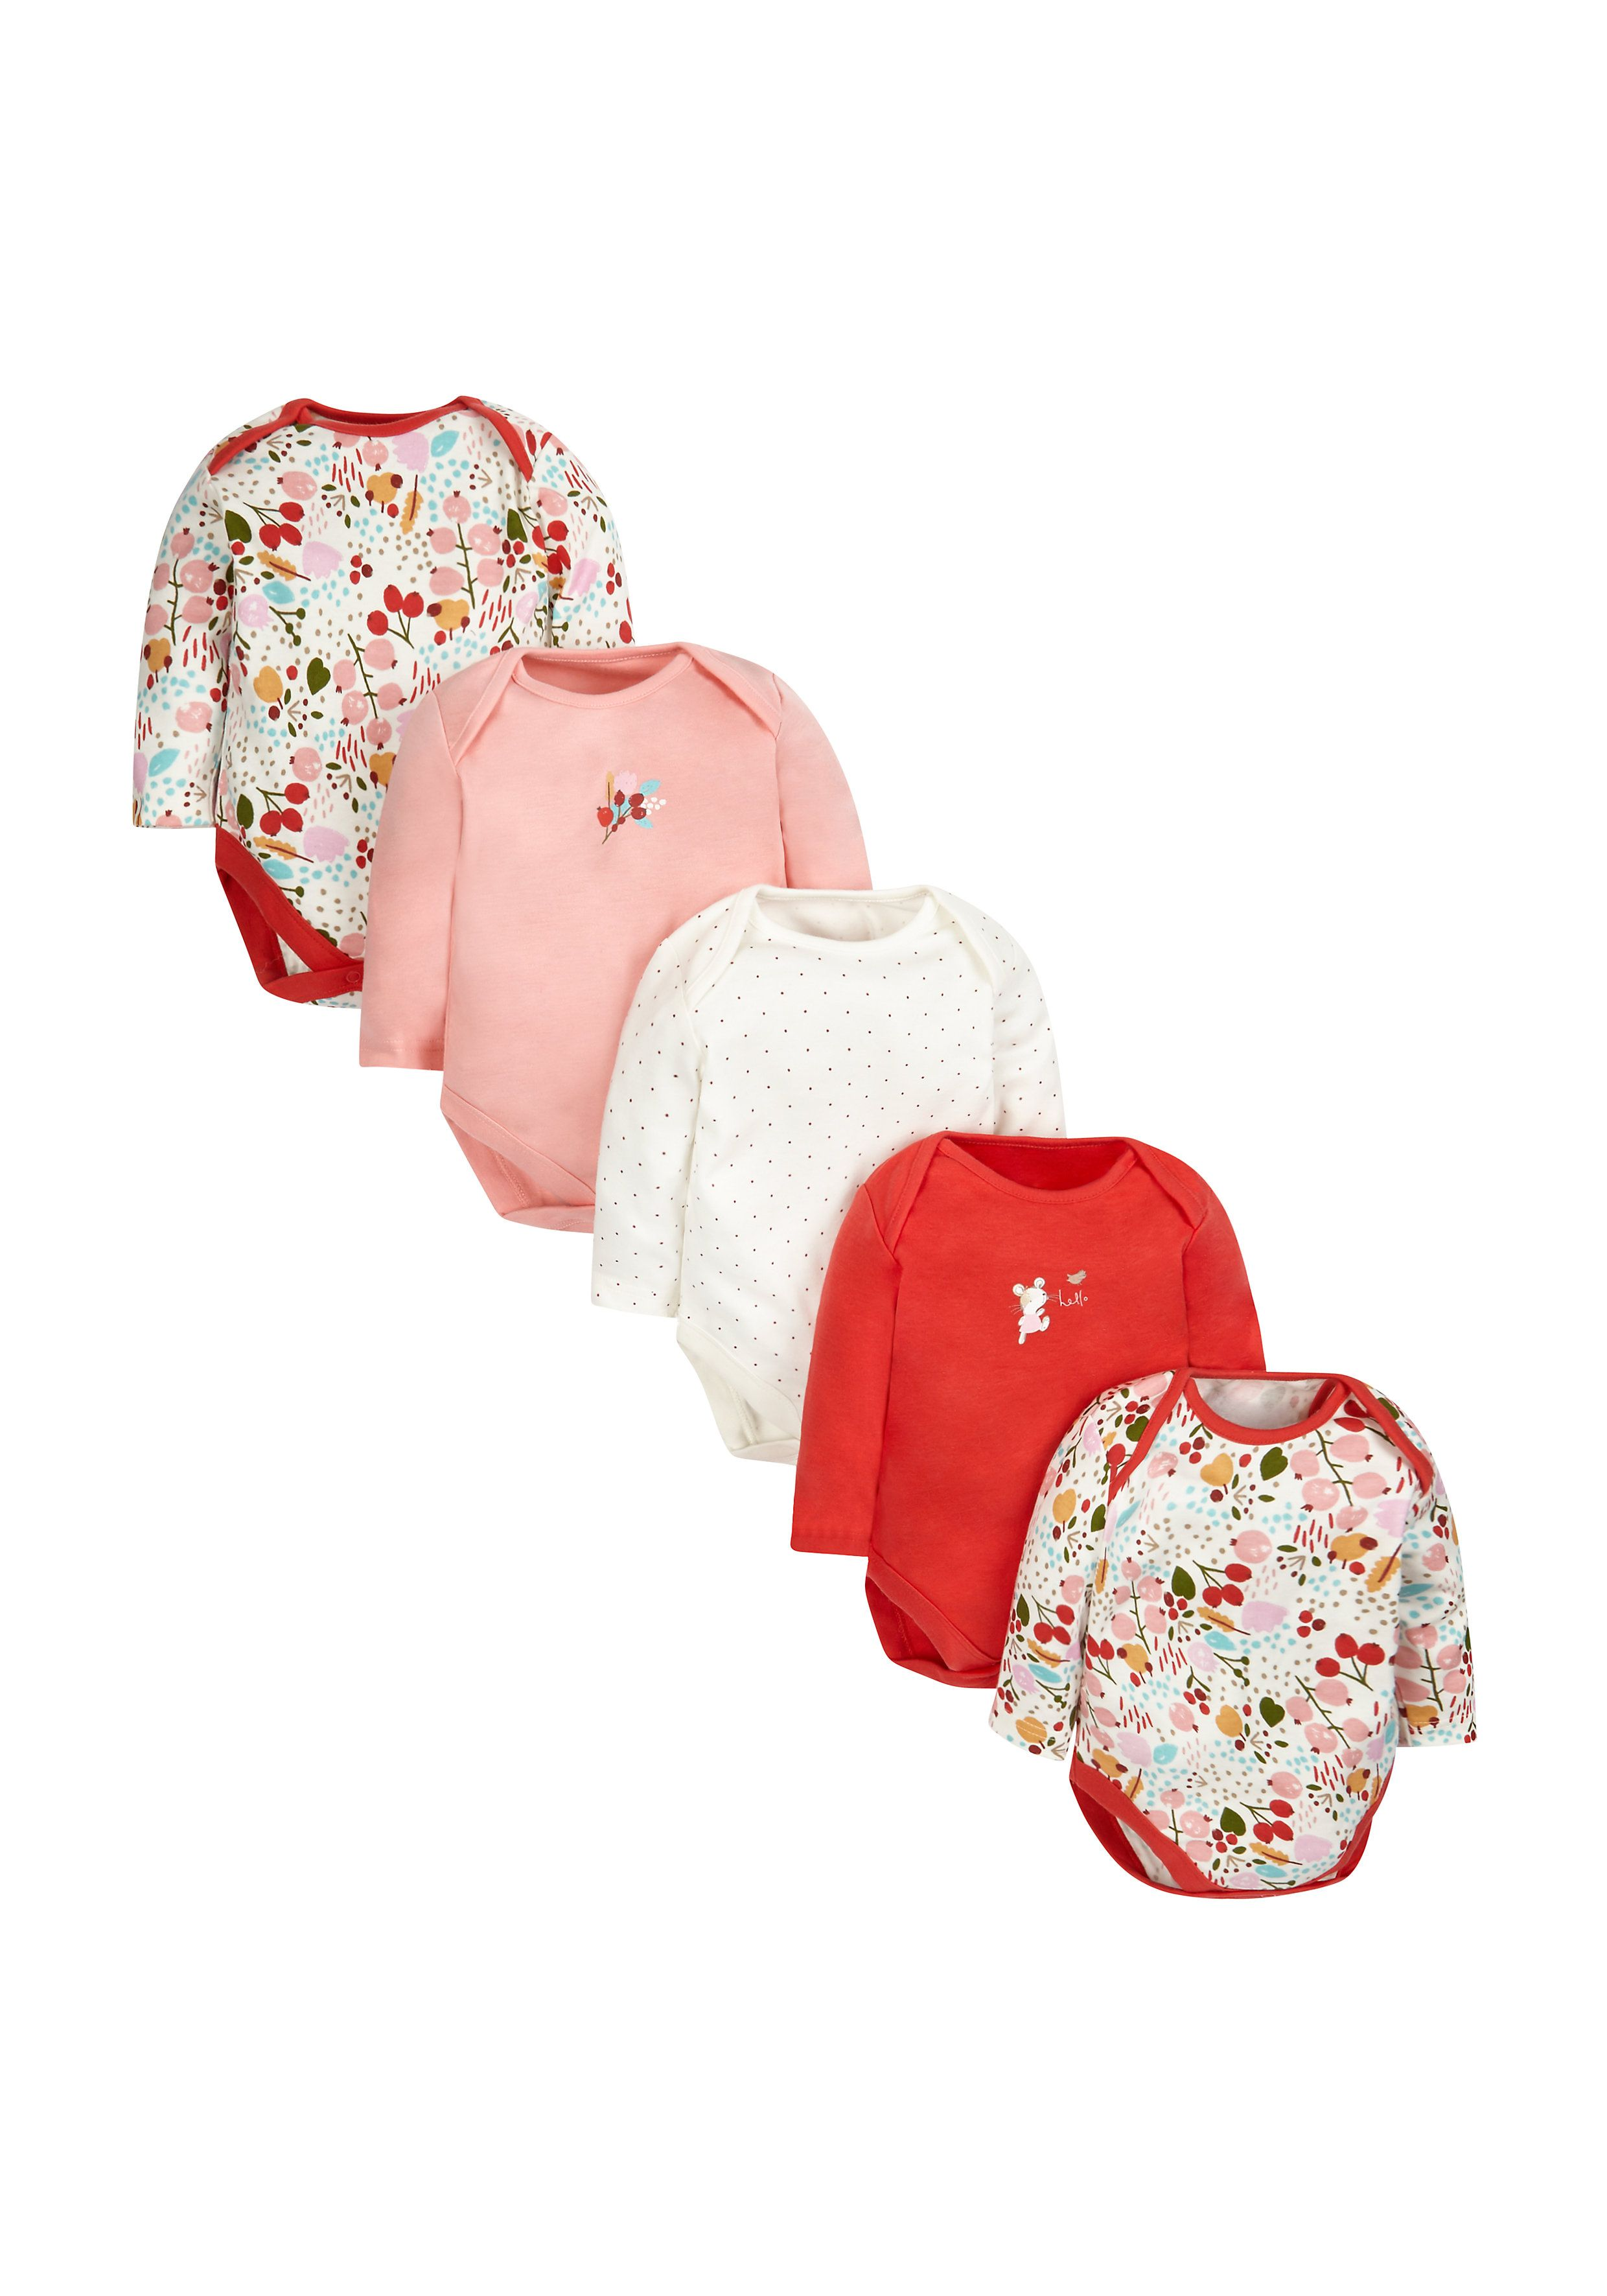 Mothercare | Autumn Leaves Bodysuits - 5 Pack